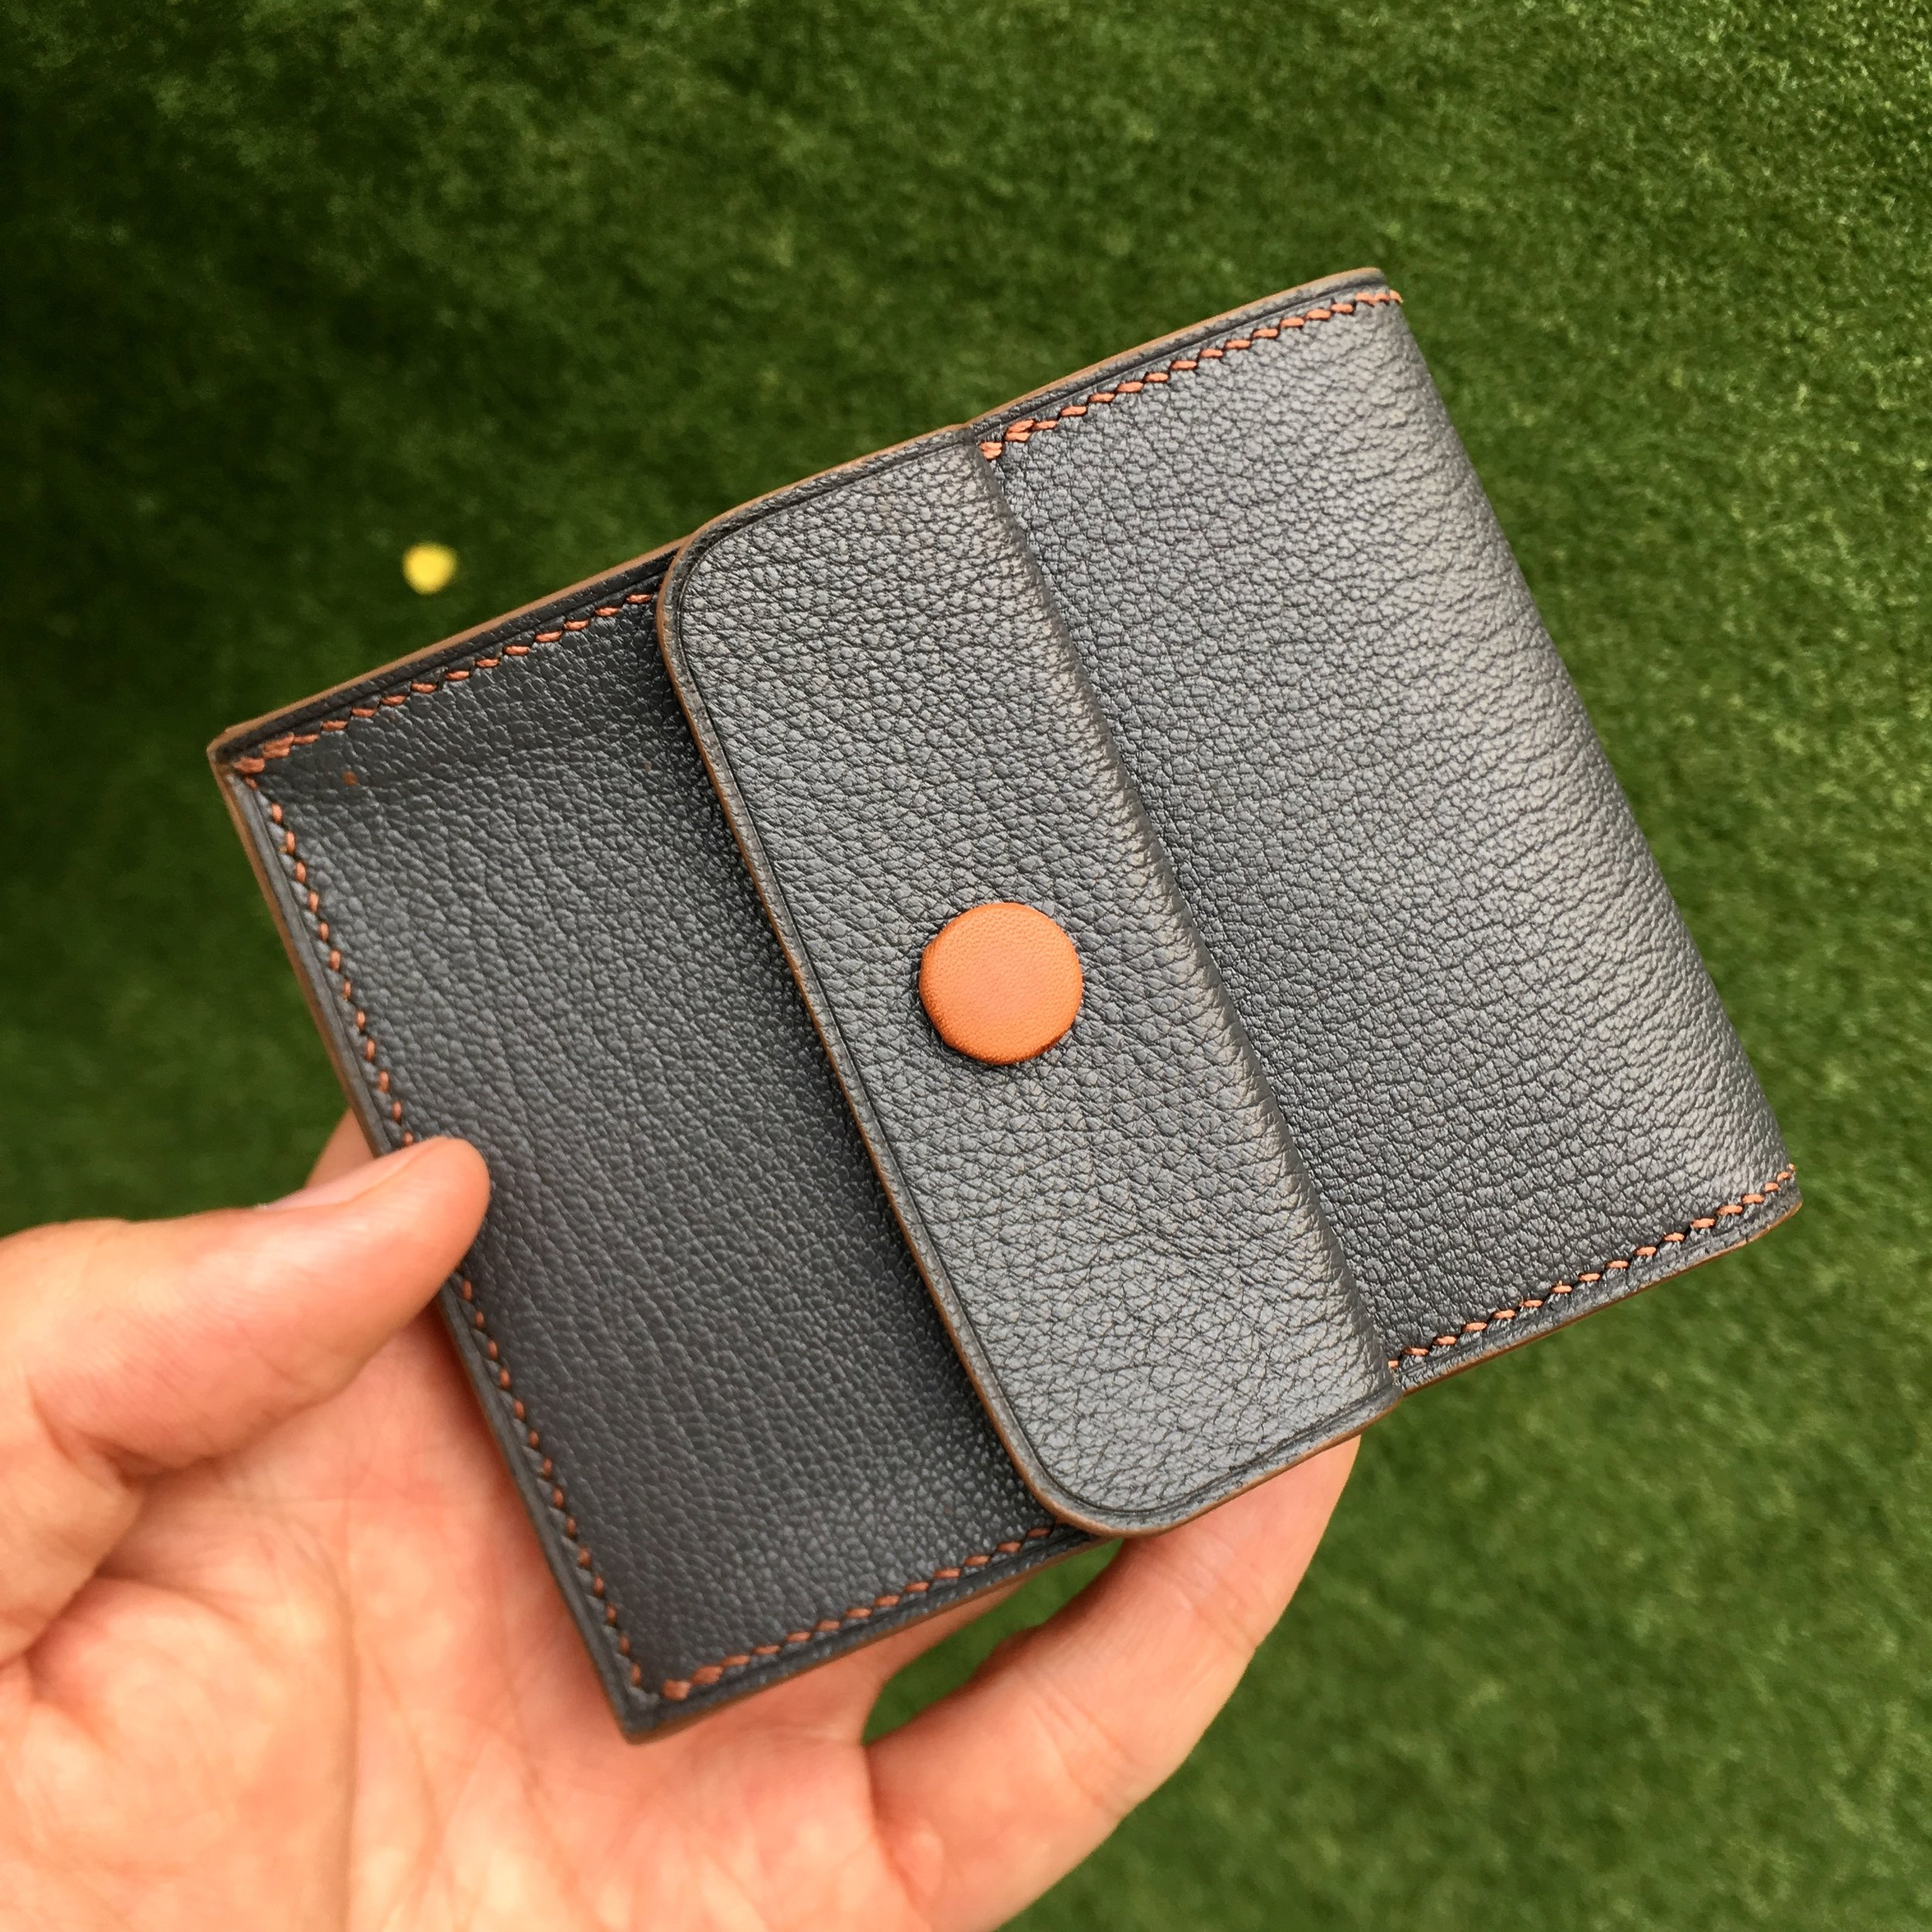 Bifold Wallet     6 card slot with single note compartment plus a coin compartment